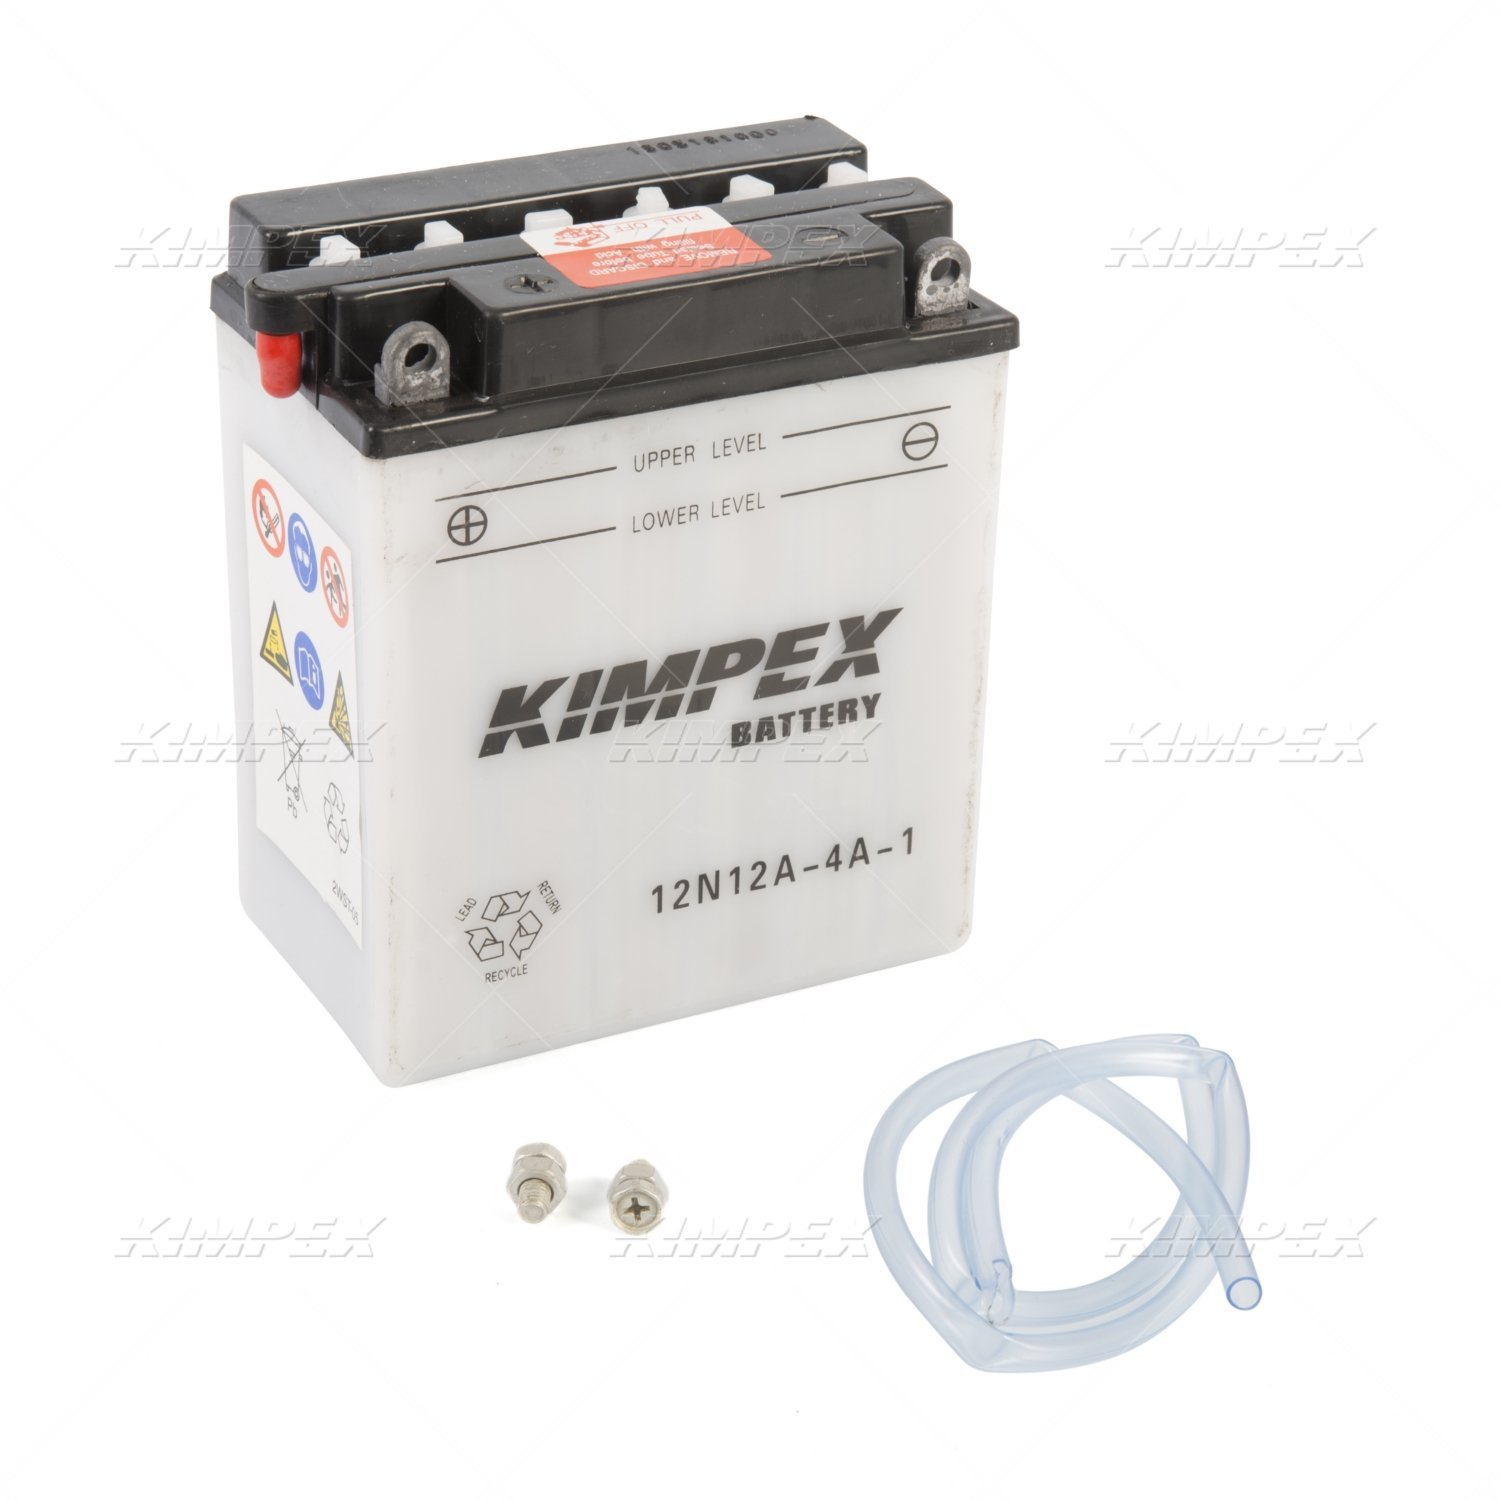 12N12A-4A-1-PP KIMPEX Conventional Battery